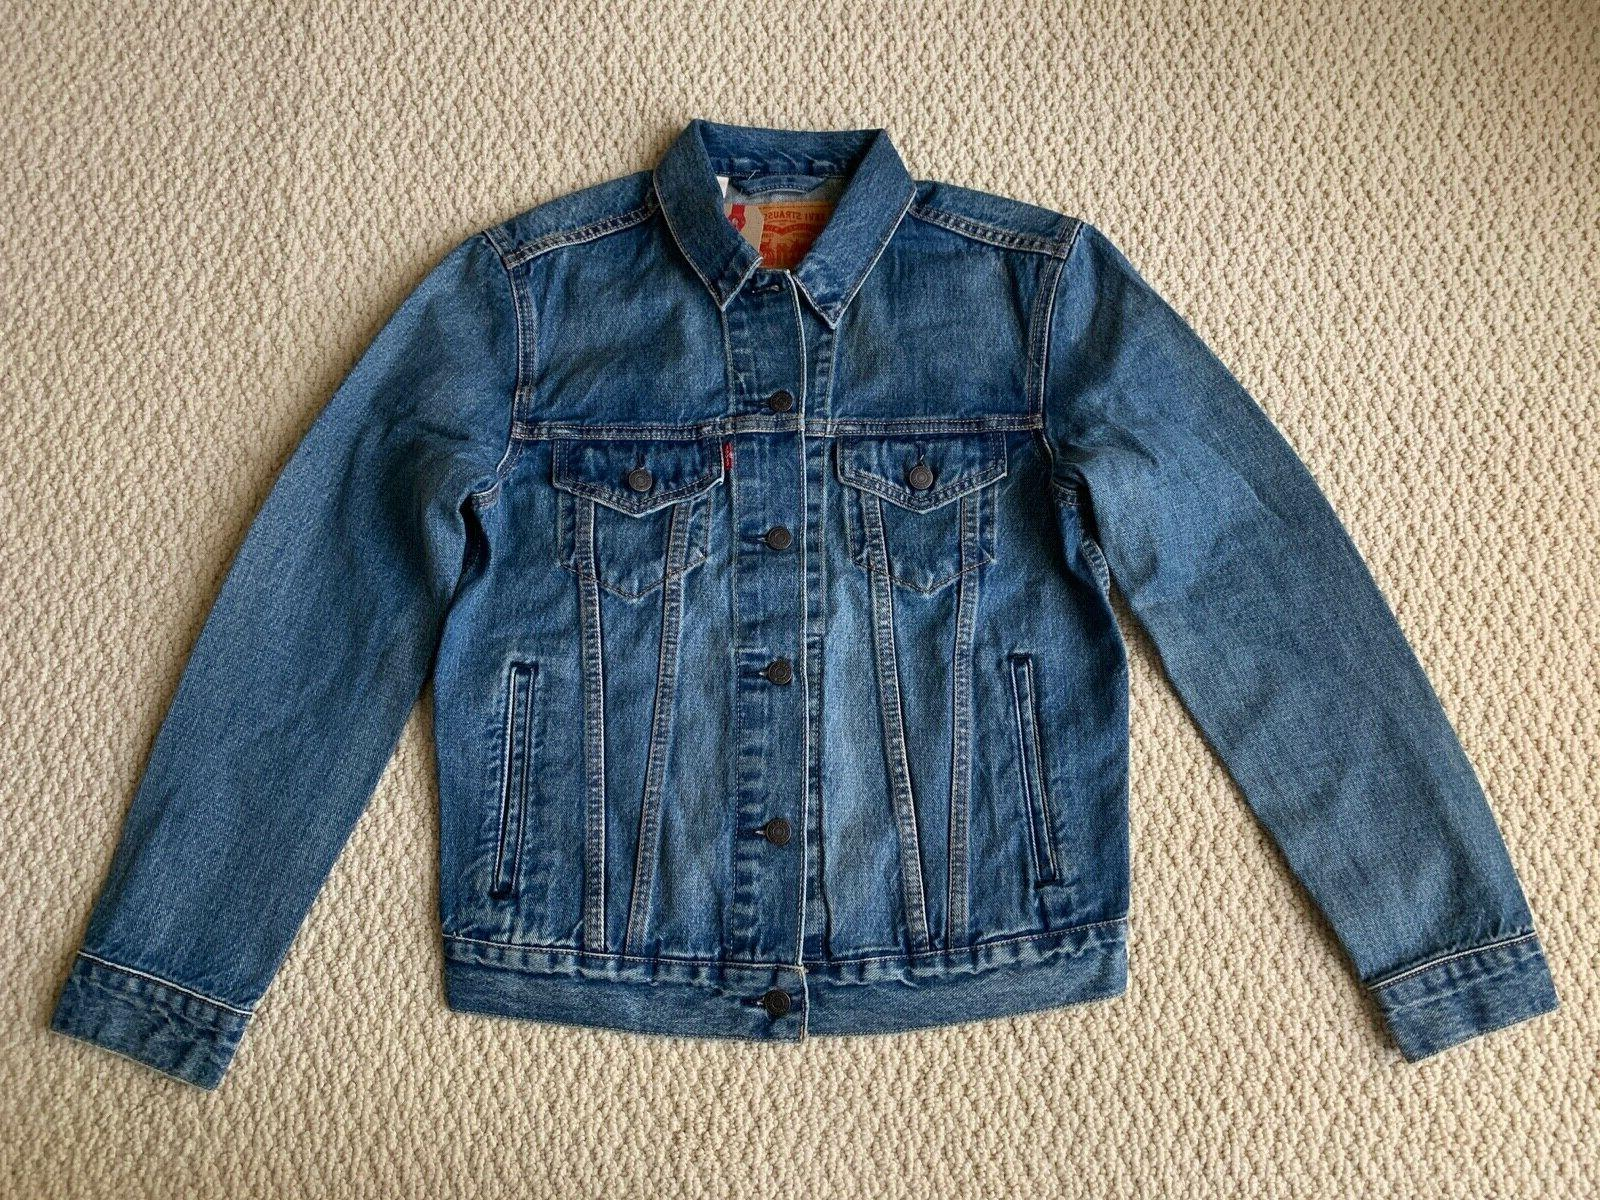 NWT Bolt Red Blue Denim Jacket SIZES S-2XL